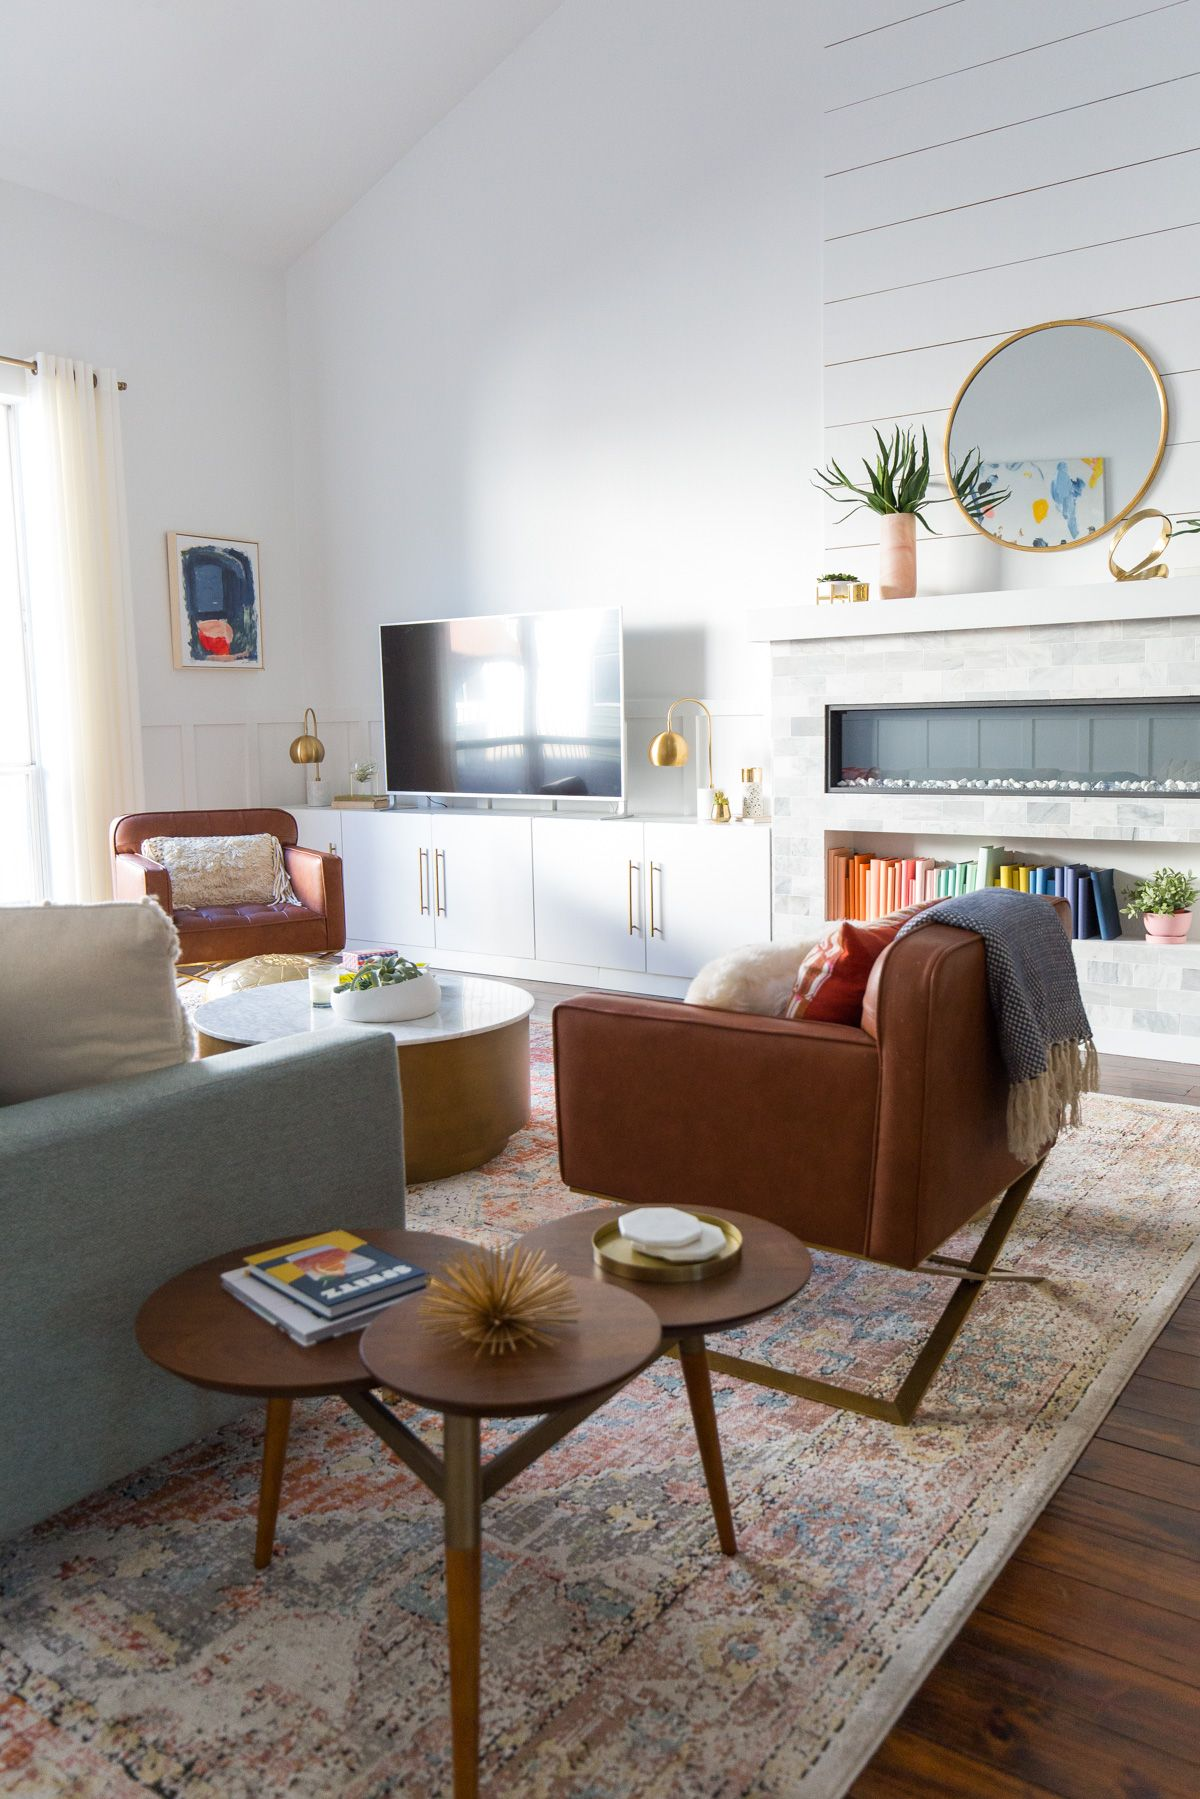 Big Reveal: Finally Sharing Our Finished Living Room Makeover ...